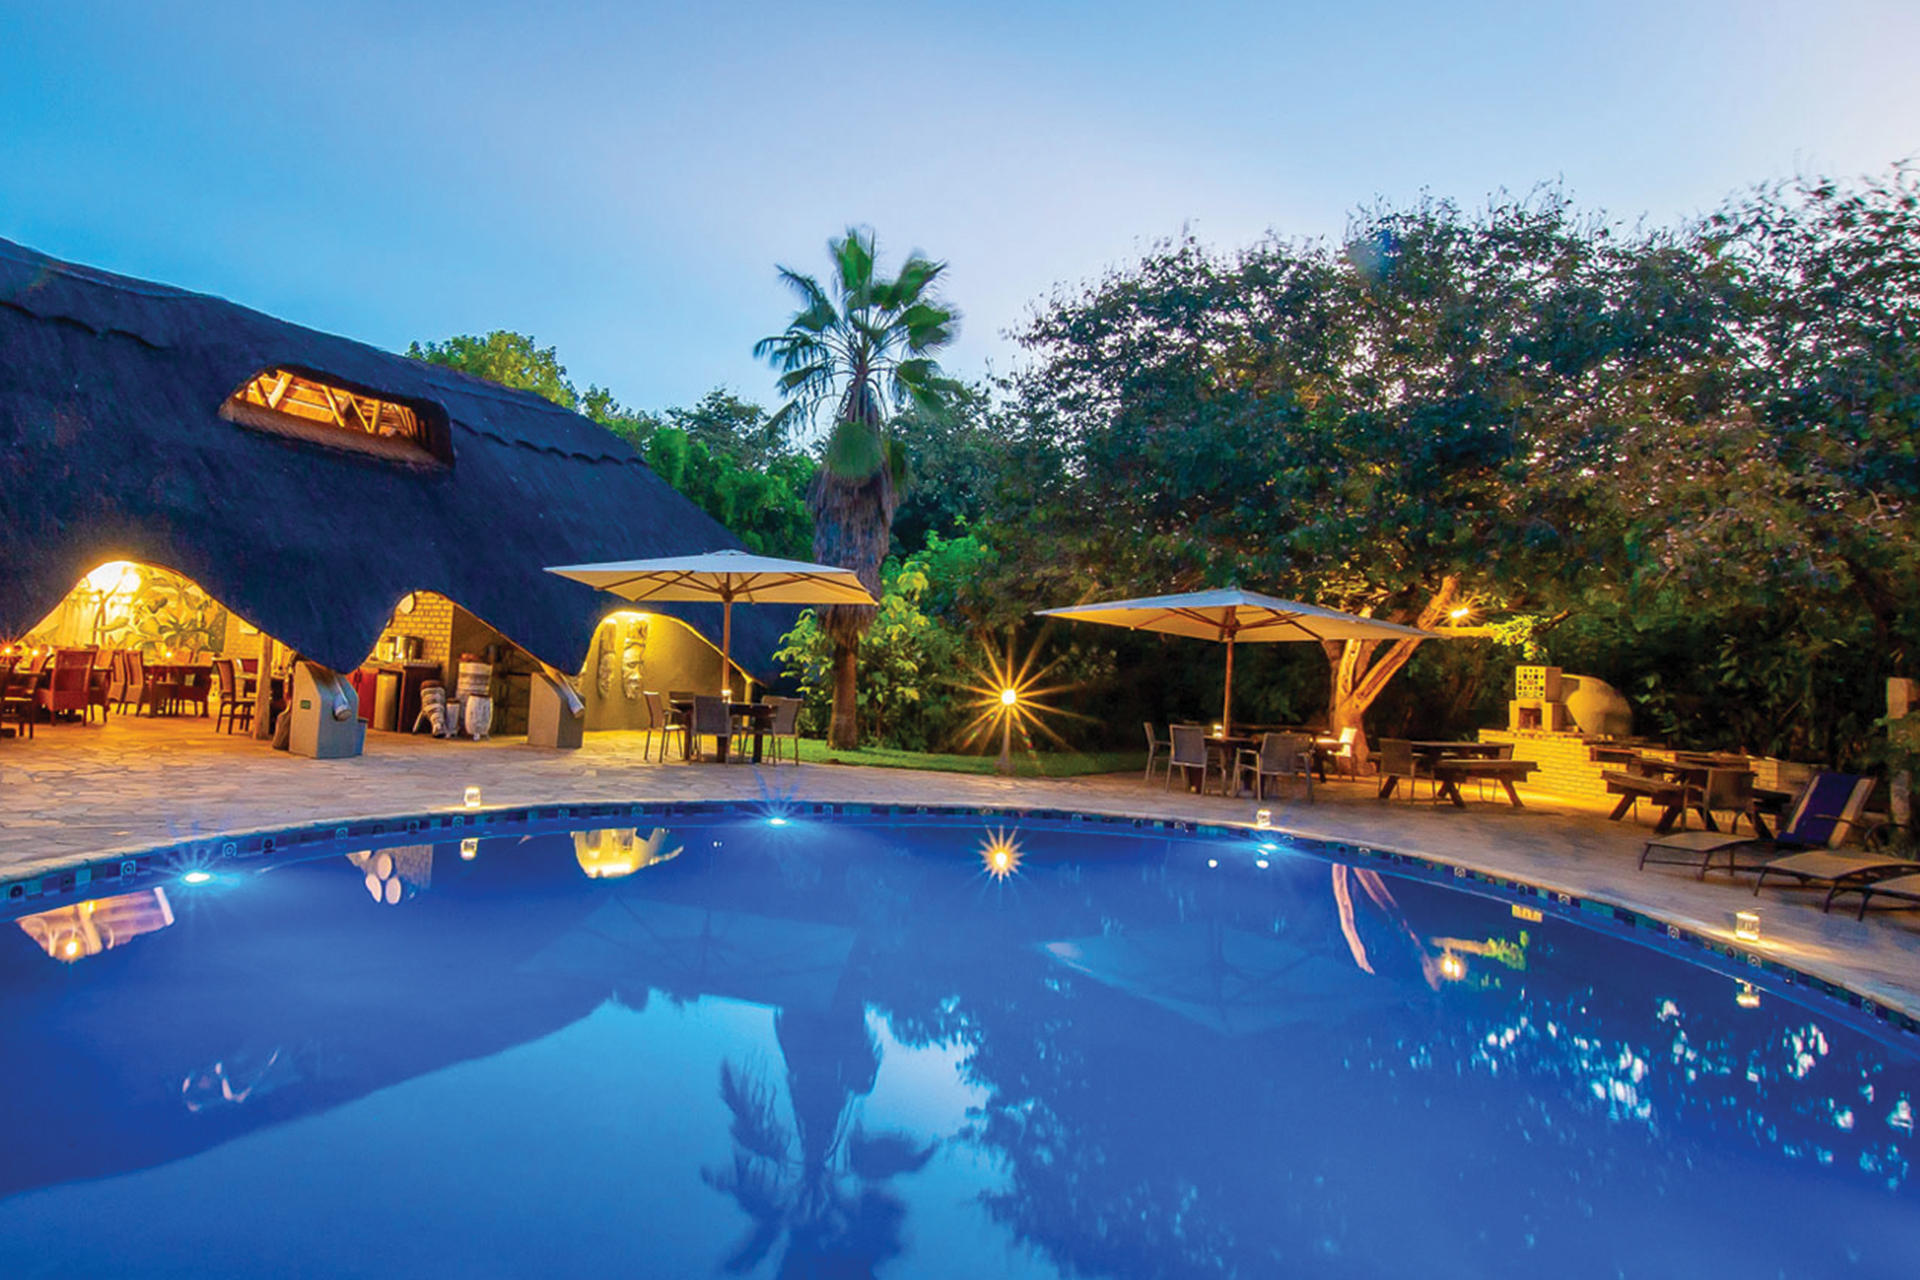 bayete-guest-lodge